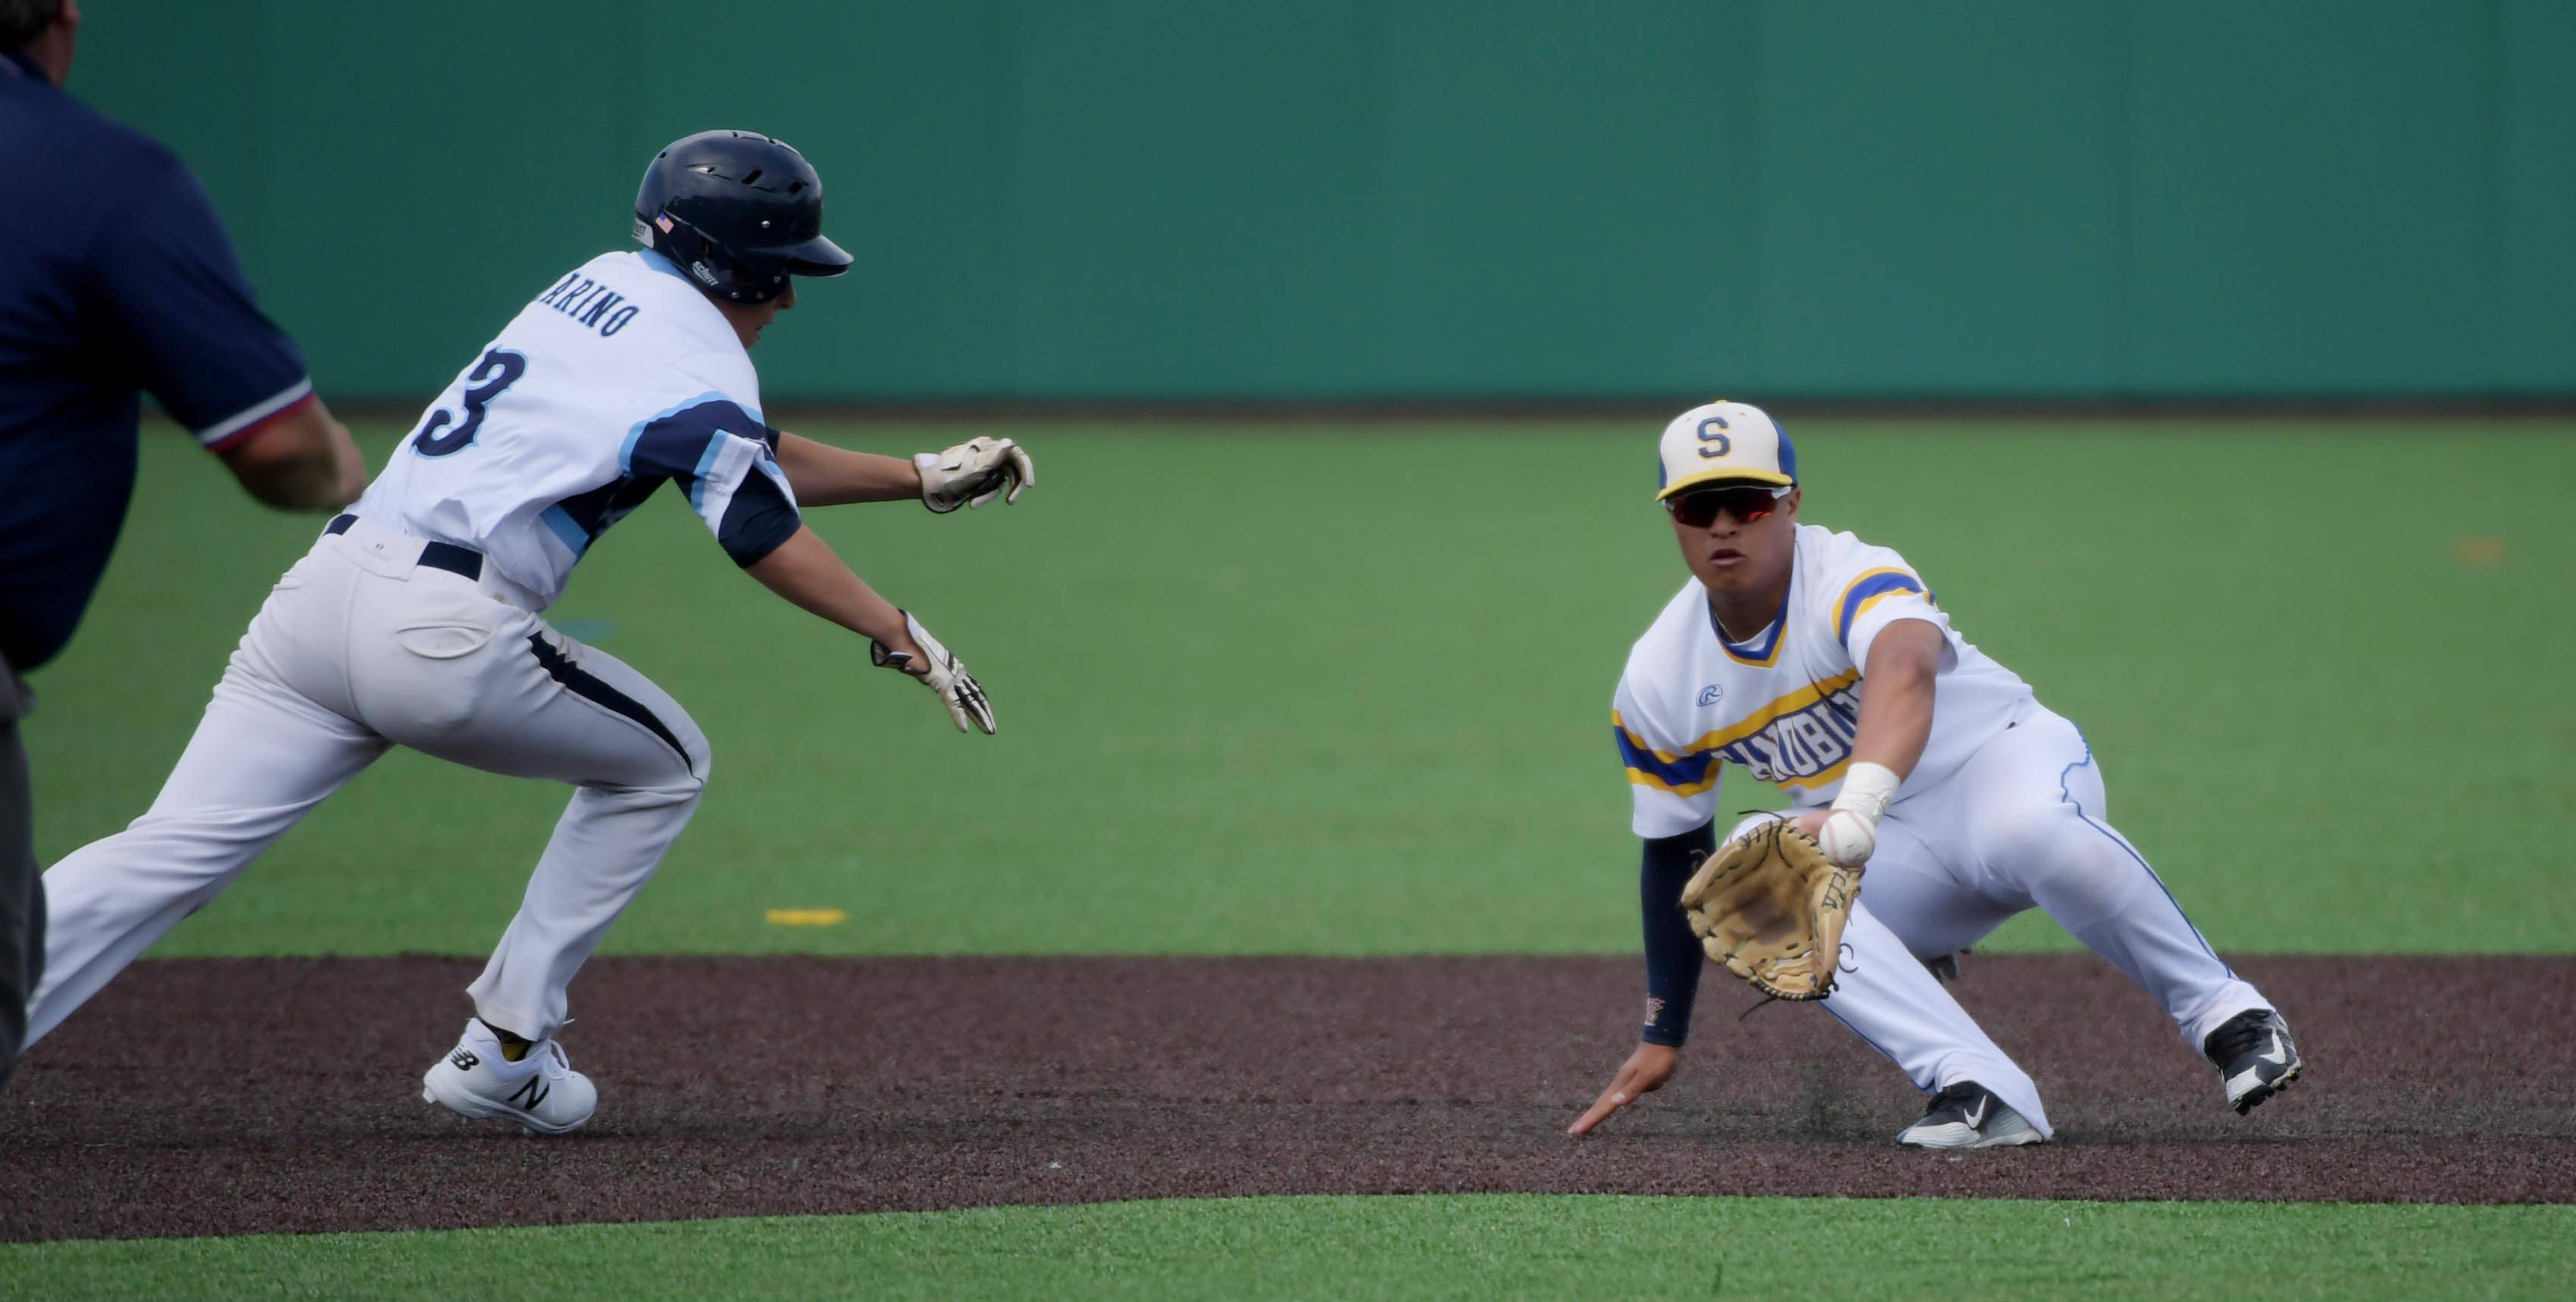 Lake Park's Rory Marino gets caught off second base by Sandburg's Branden Comia in the Class 4A state baseball third place game at Route 66 Stadium in Joliet Saturday.